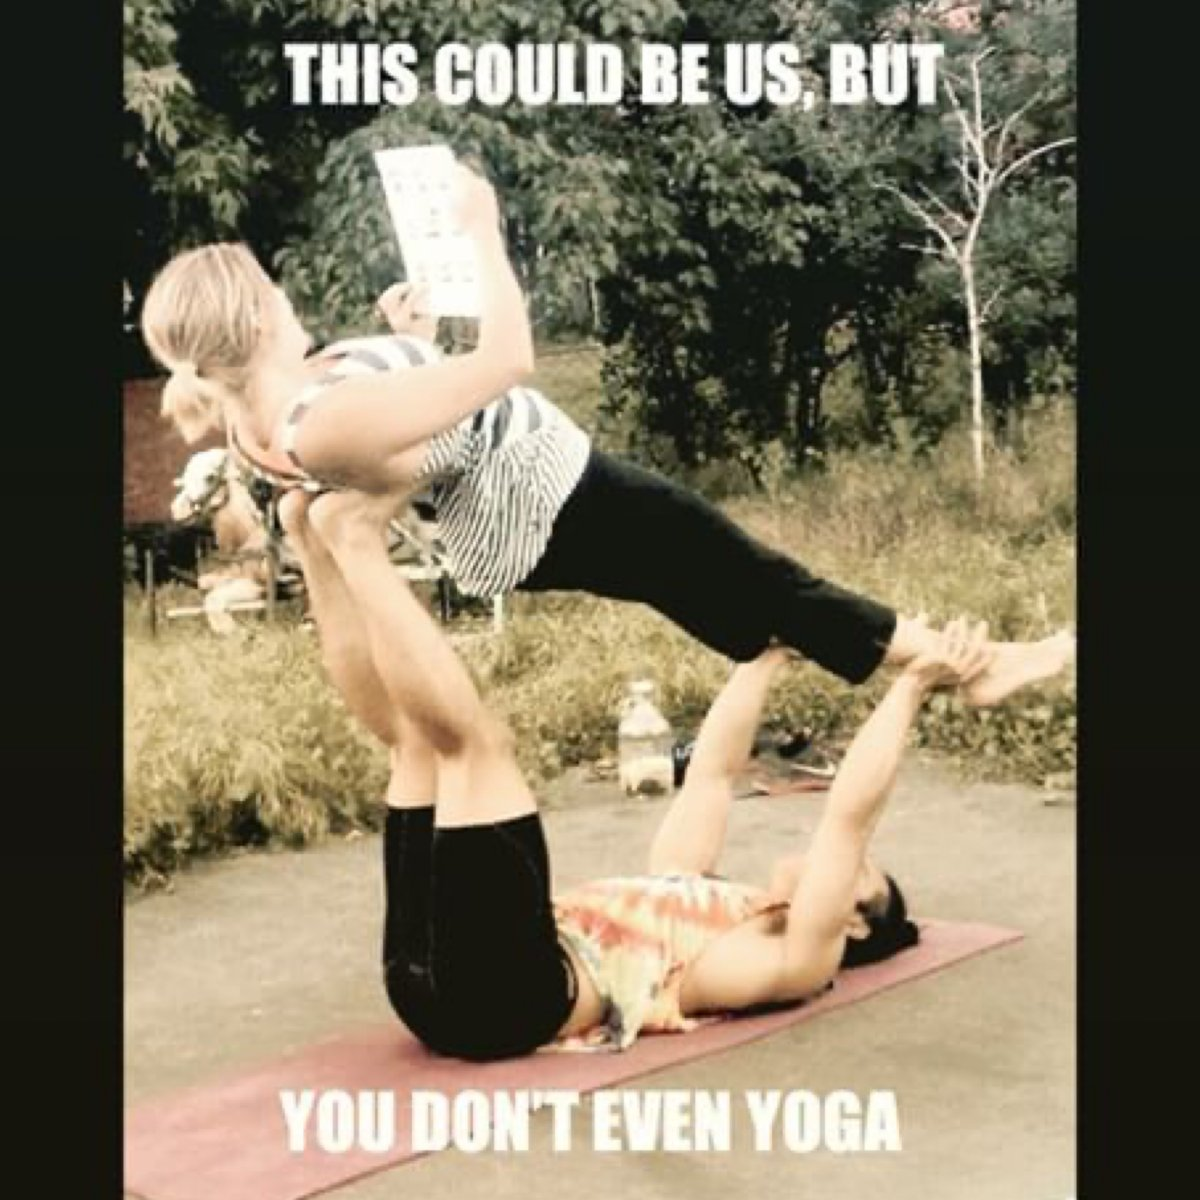 Good morning  Ready to turn up the heat with Sexycises?! http://Sexycises.com #Sexycises #CouplesYoga #CouplesWorkout #PartnerYoga #PartnerWorkout #Yoga #HappySaturday #SaturdayShenanigans #SaturdayMorning #PoseOfTheDay pic.twitter.com/652hiRxuMK